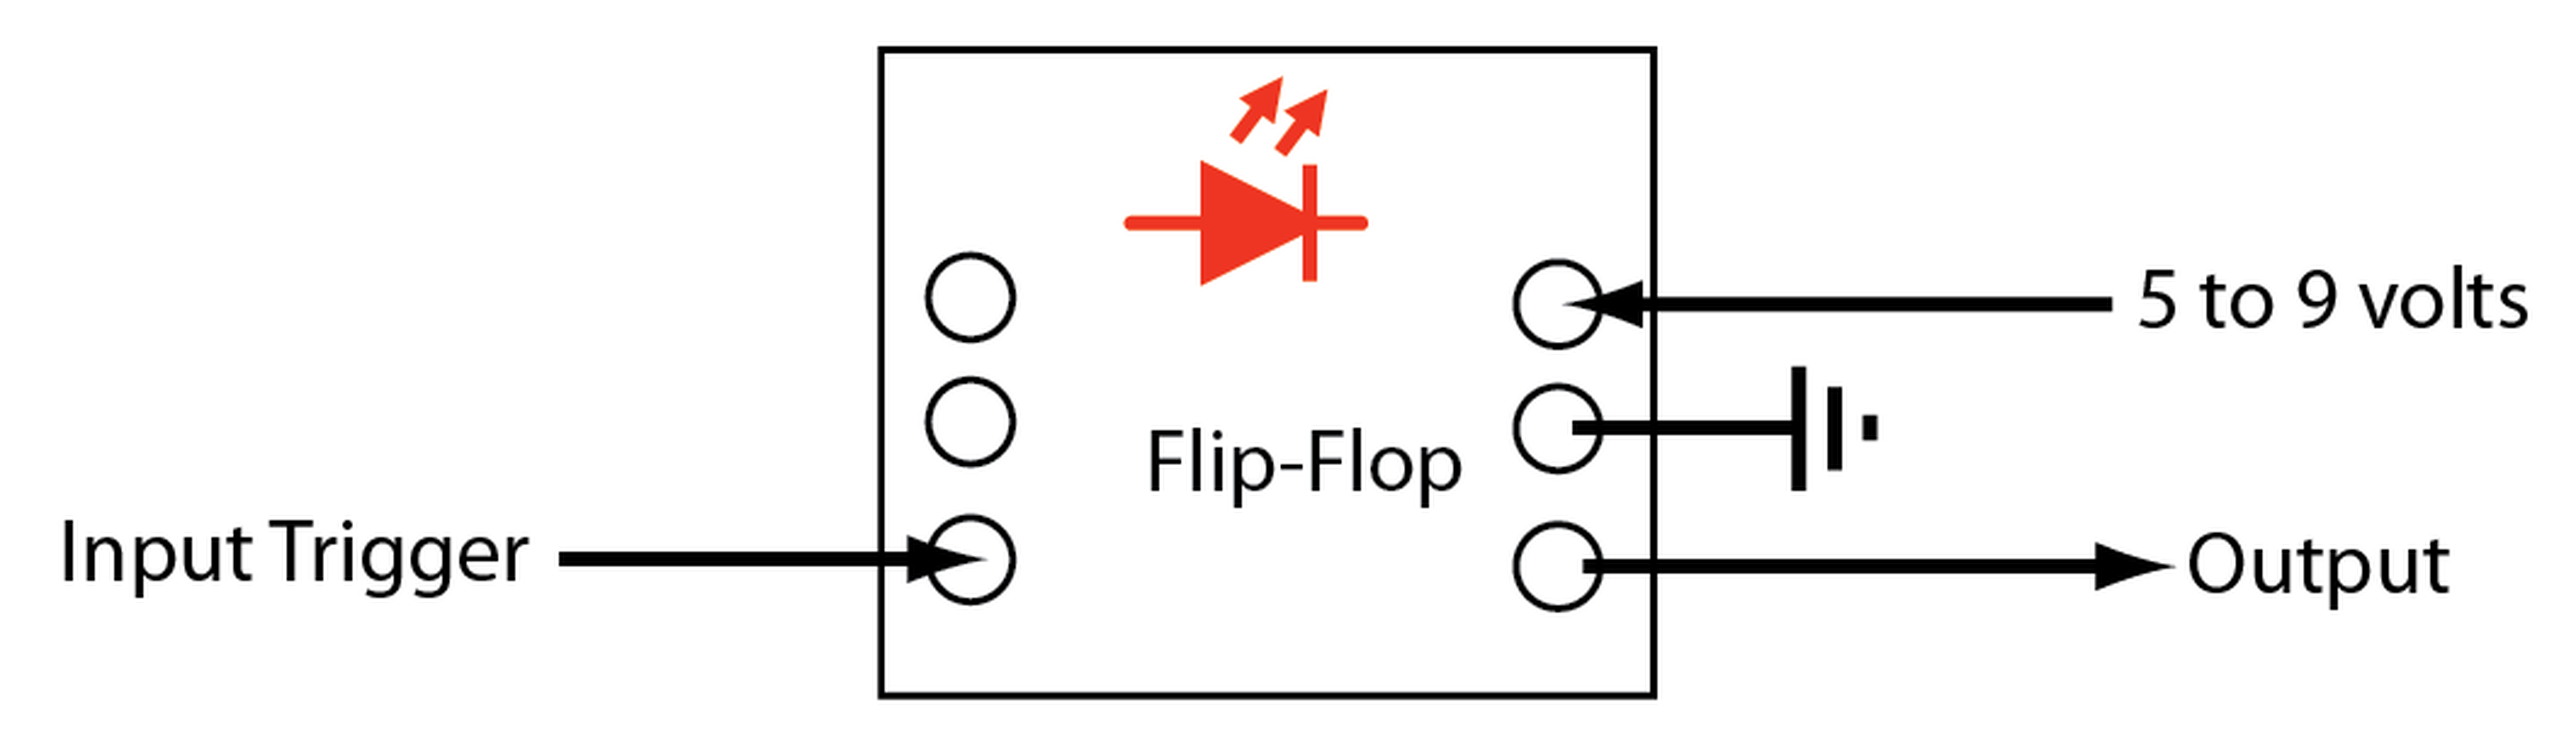 Flip Flop Kit From Theosauro On Tindie Circuit Diagram 4